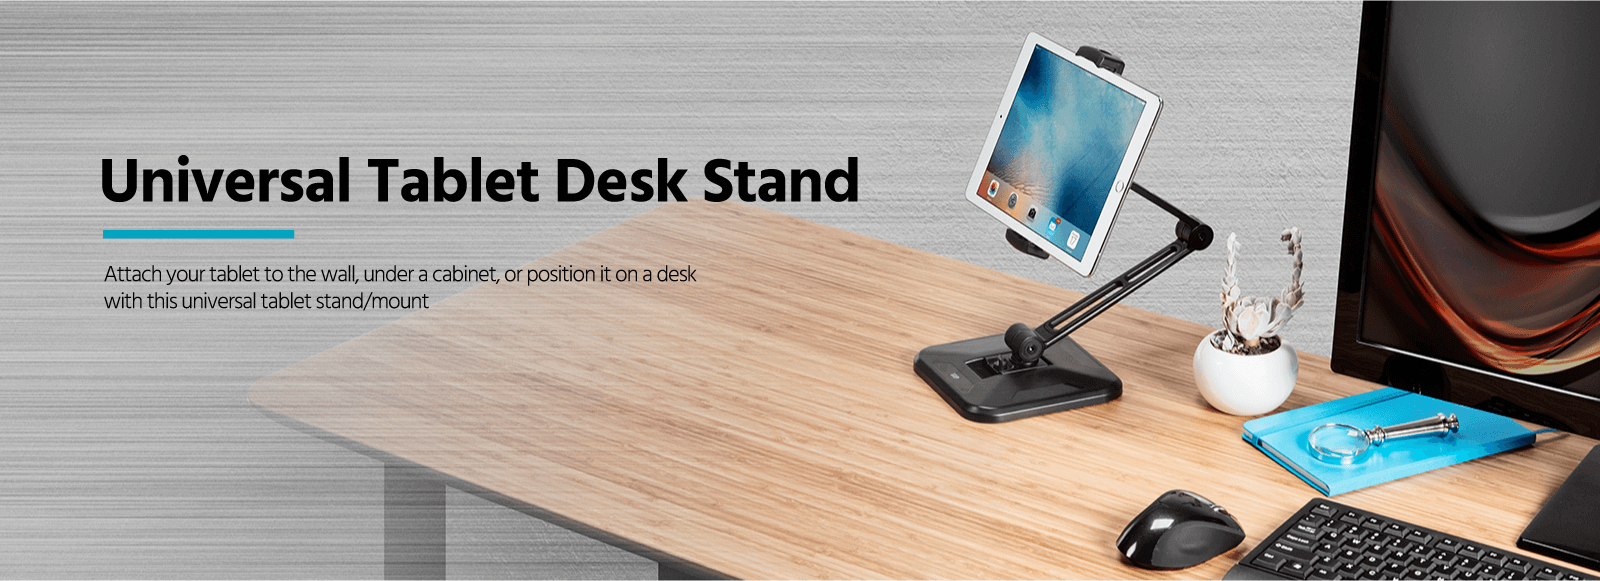 Universal Tablet Desk Stand